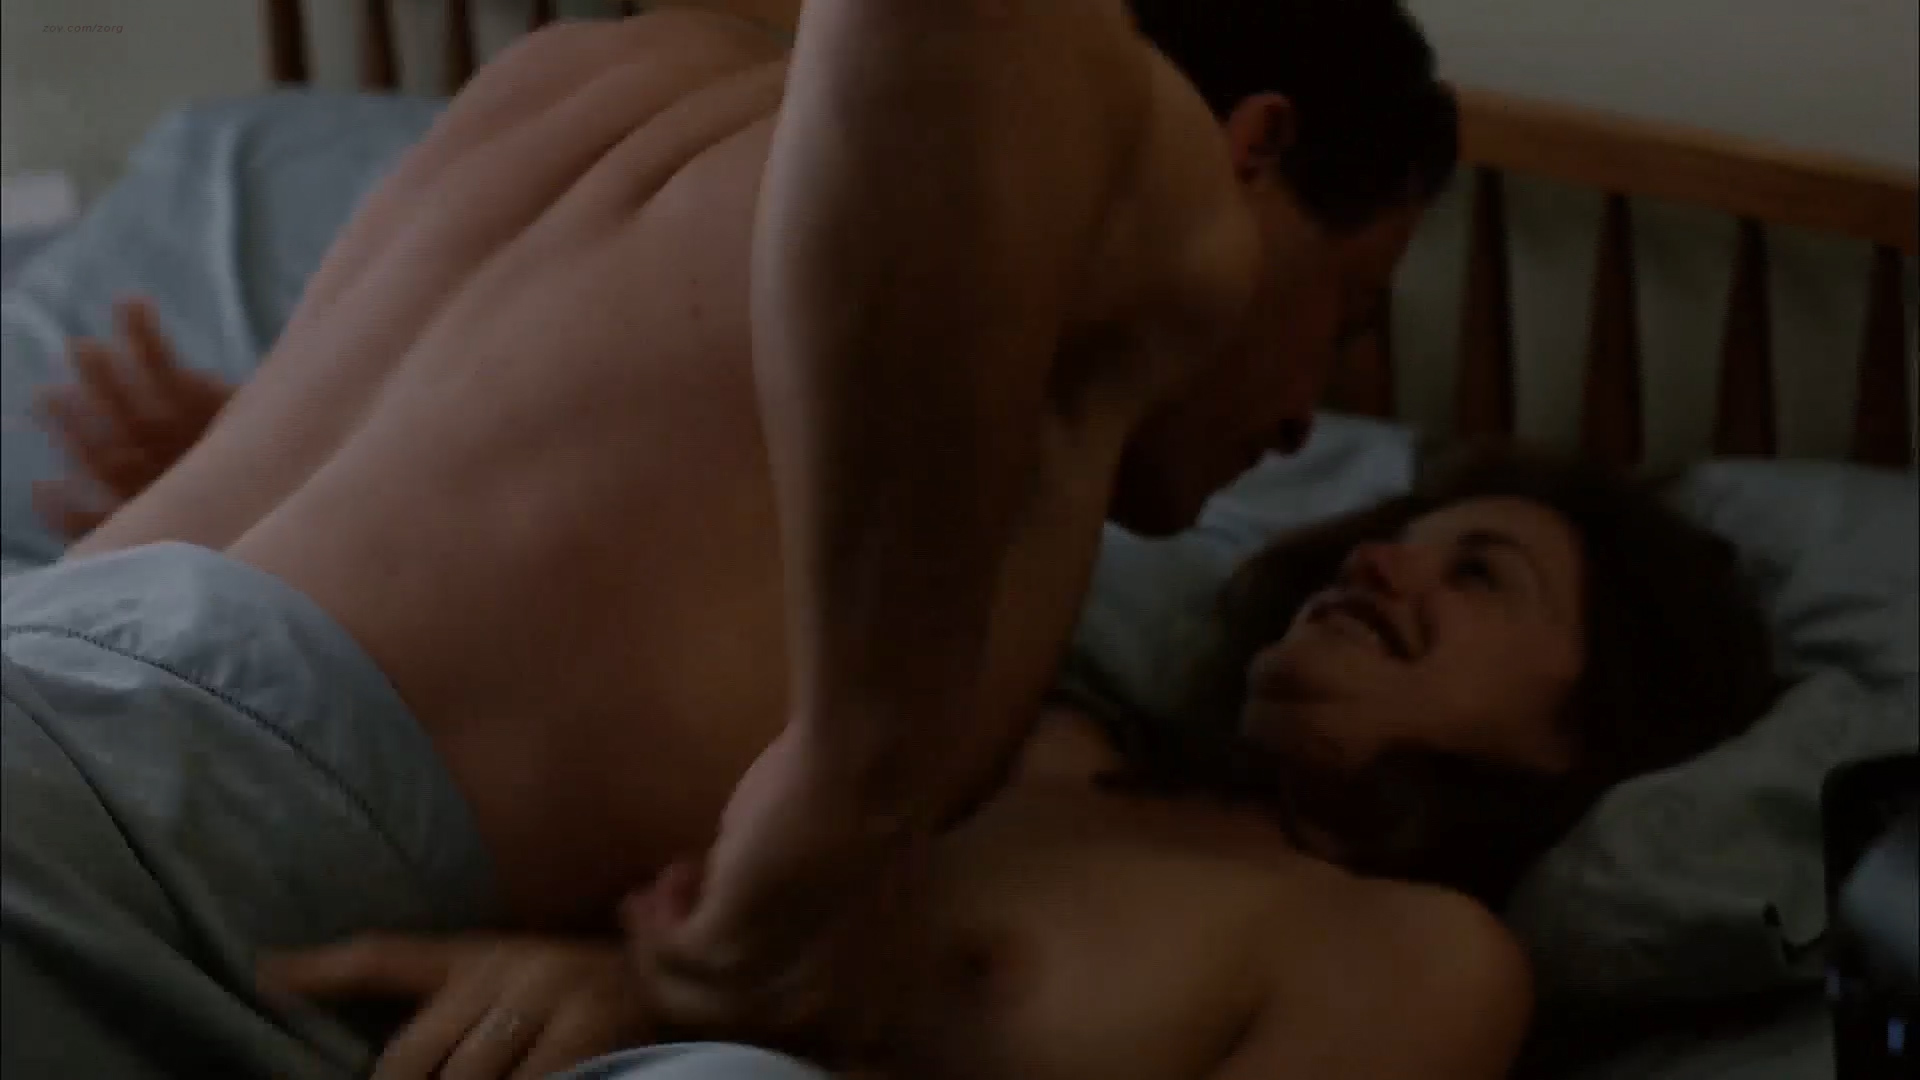 image Ruth wilson nude the affair s01e09